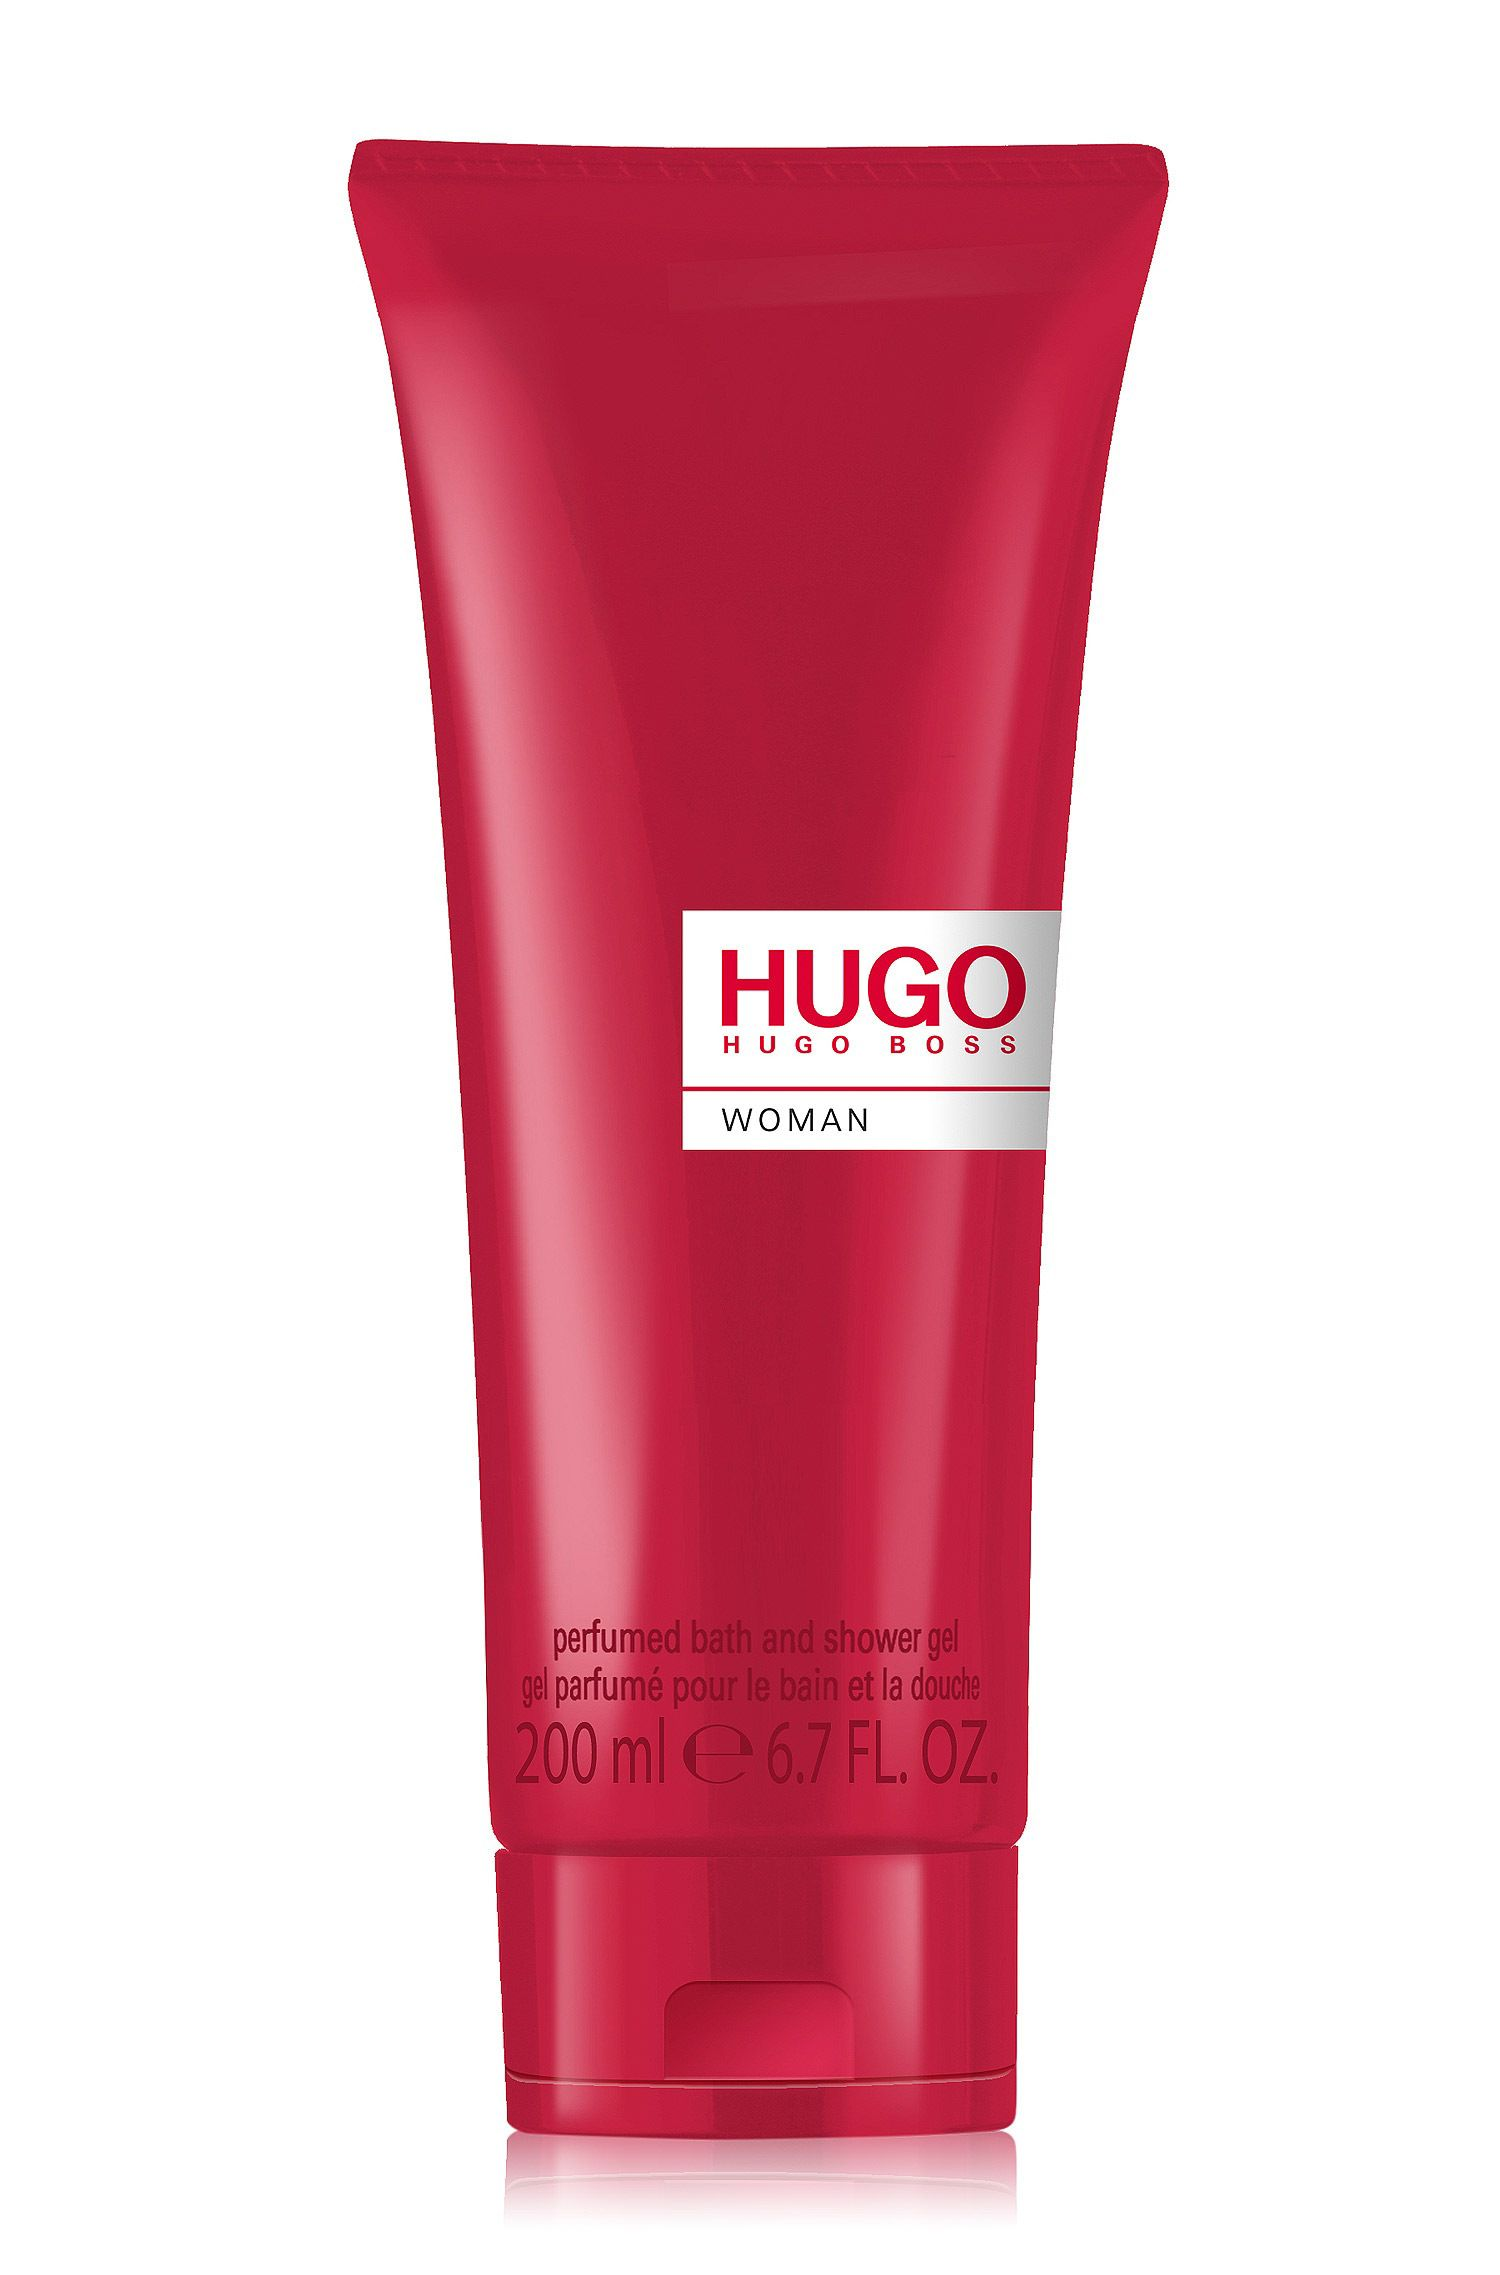 Gel douche HUGO Woman, 200 ml